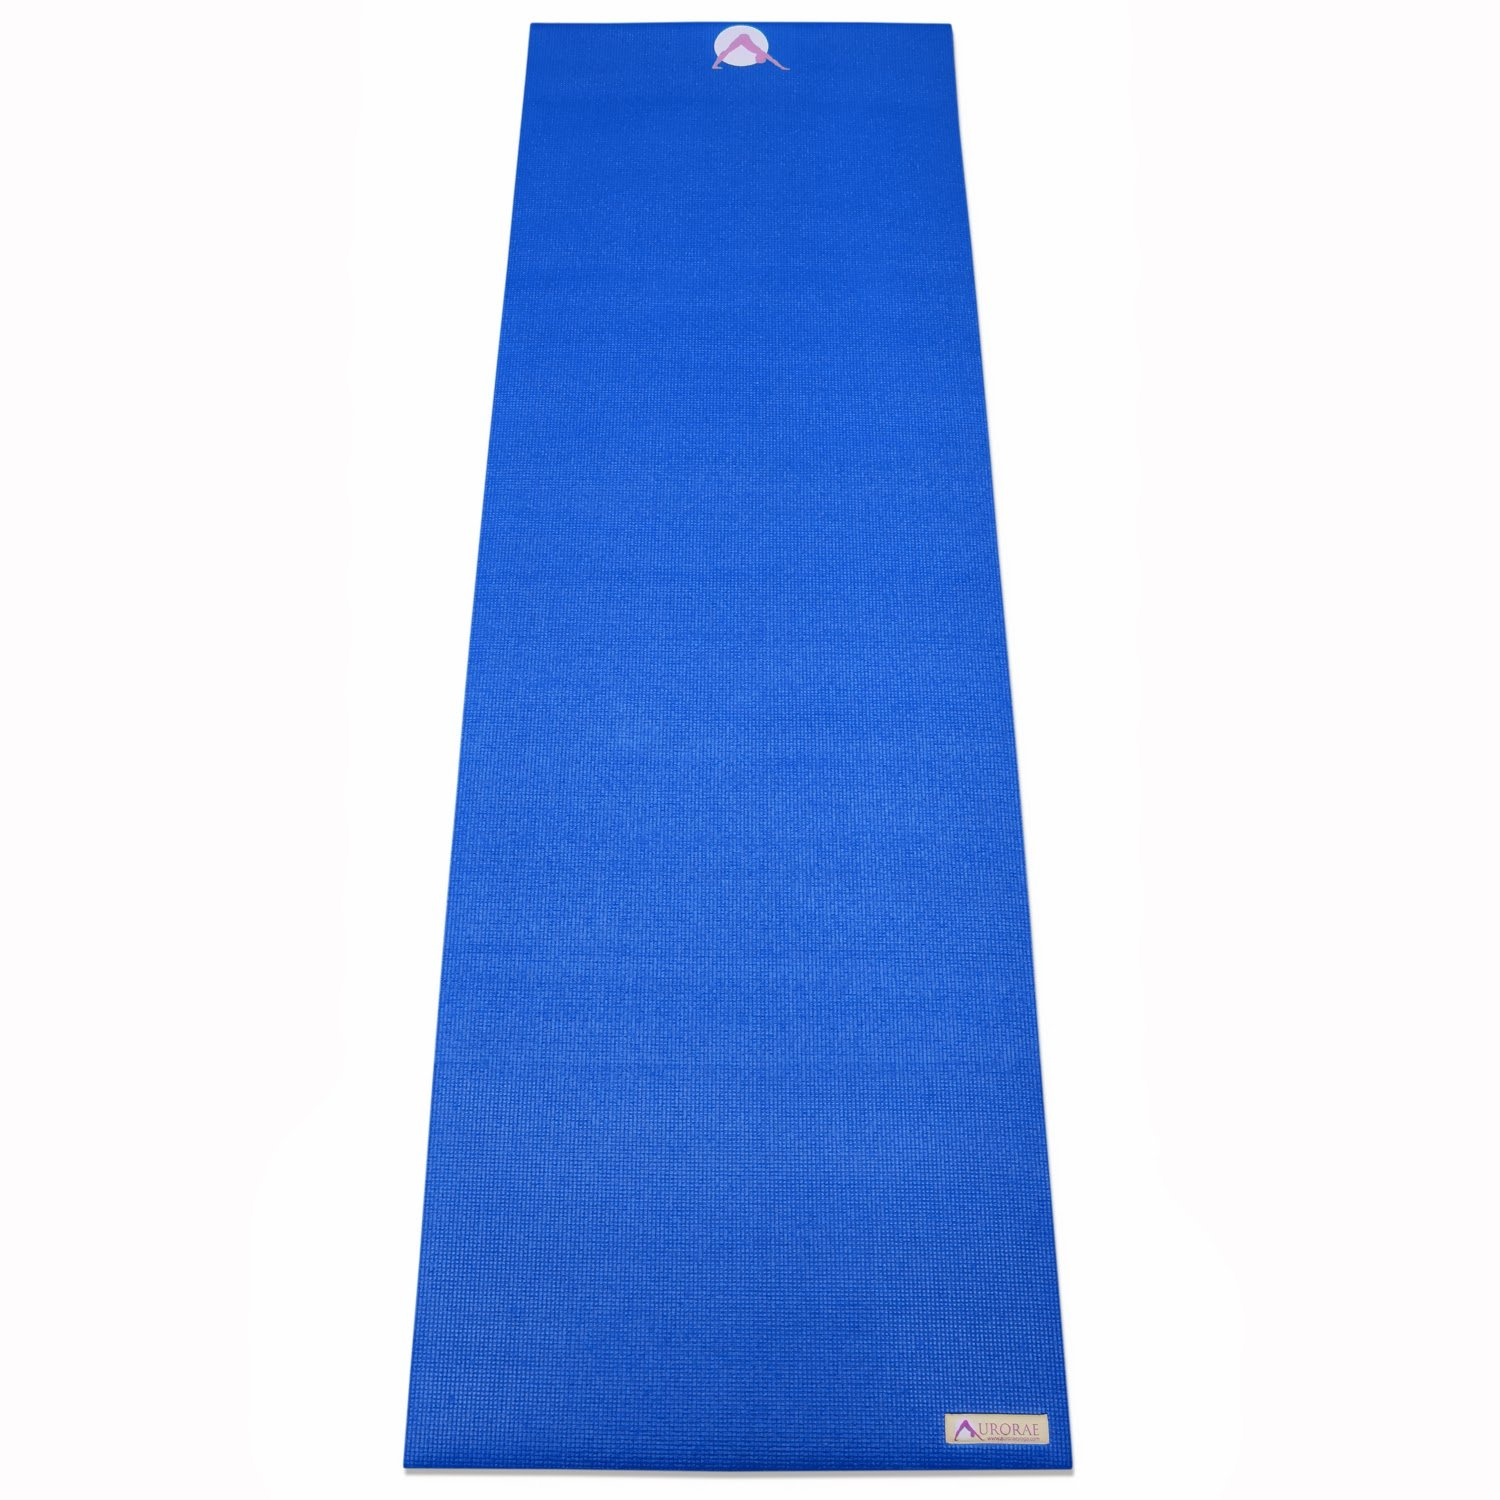 Aurorae Classic Extra Thick 1/4'' and Long 72'' Premium Eco Safe Yoga Mat with Non Slip Rosin Included